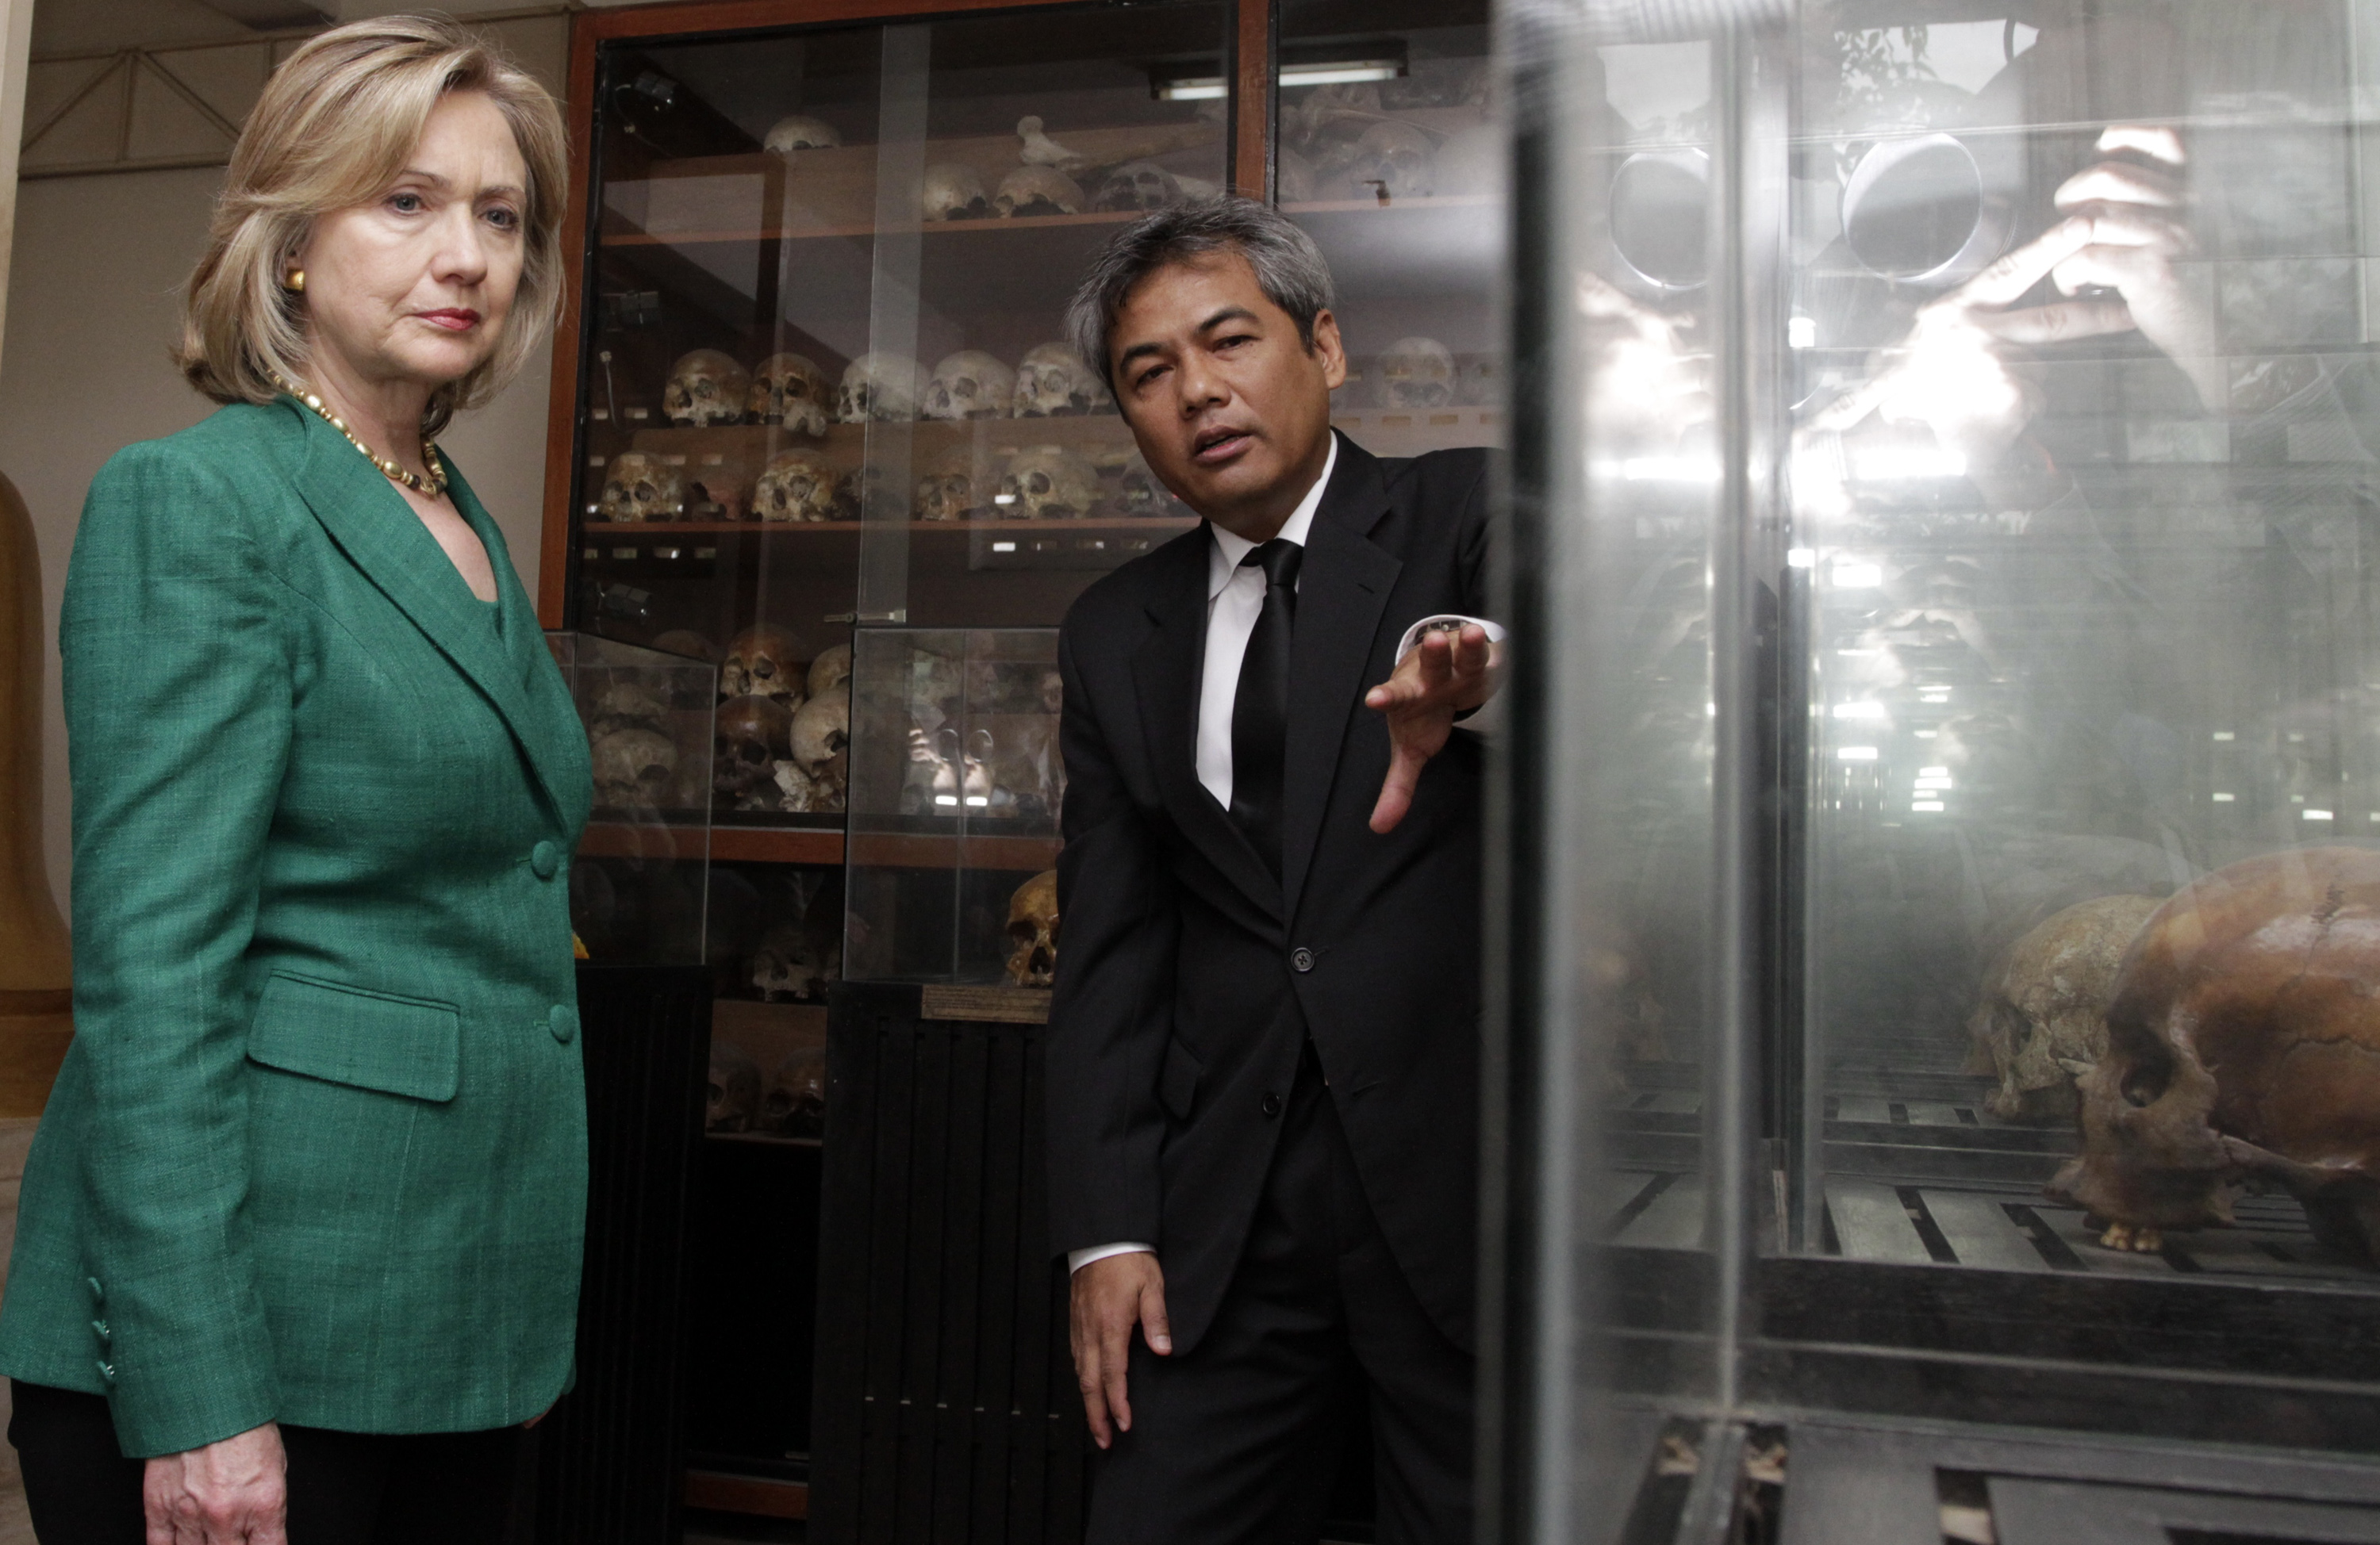 Then-Secretary of State Hillary Clinton with to Youk Chhang, the director of the Documentation Center of Cambodia, during a visit to notorious Khmer Rouge security prison Tuol Sleng (S-21) in Phnom Penh, Cambodia on Nov. 1, 2010.